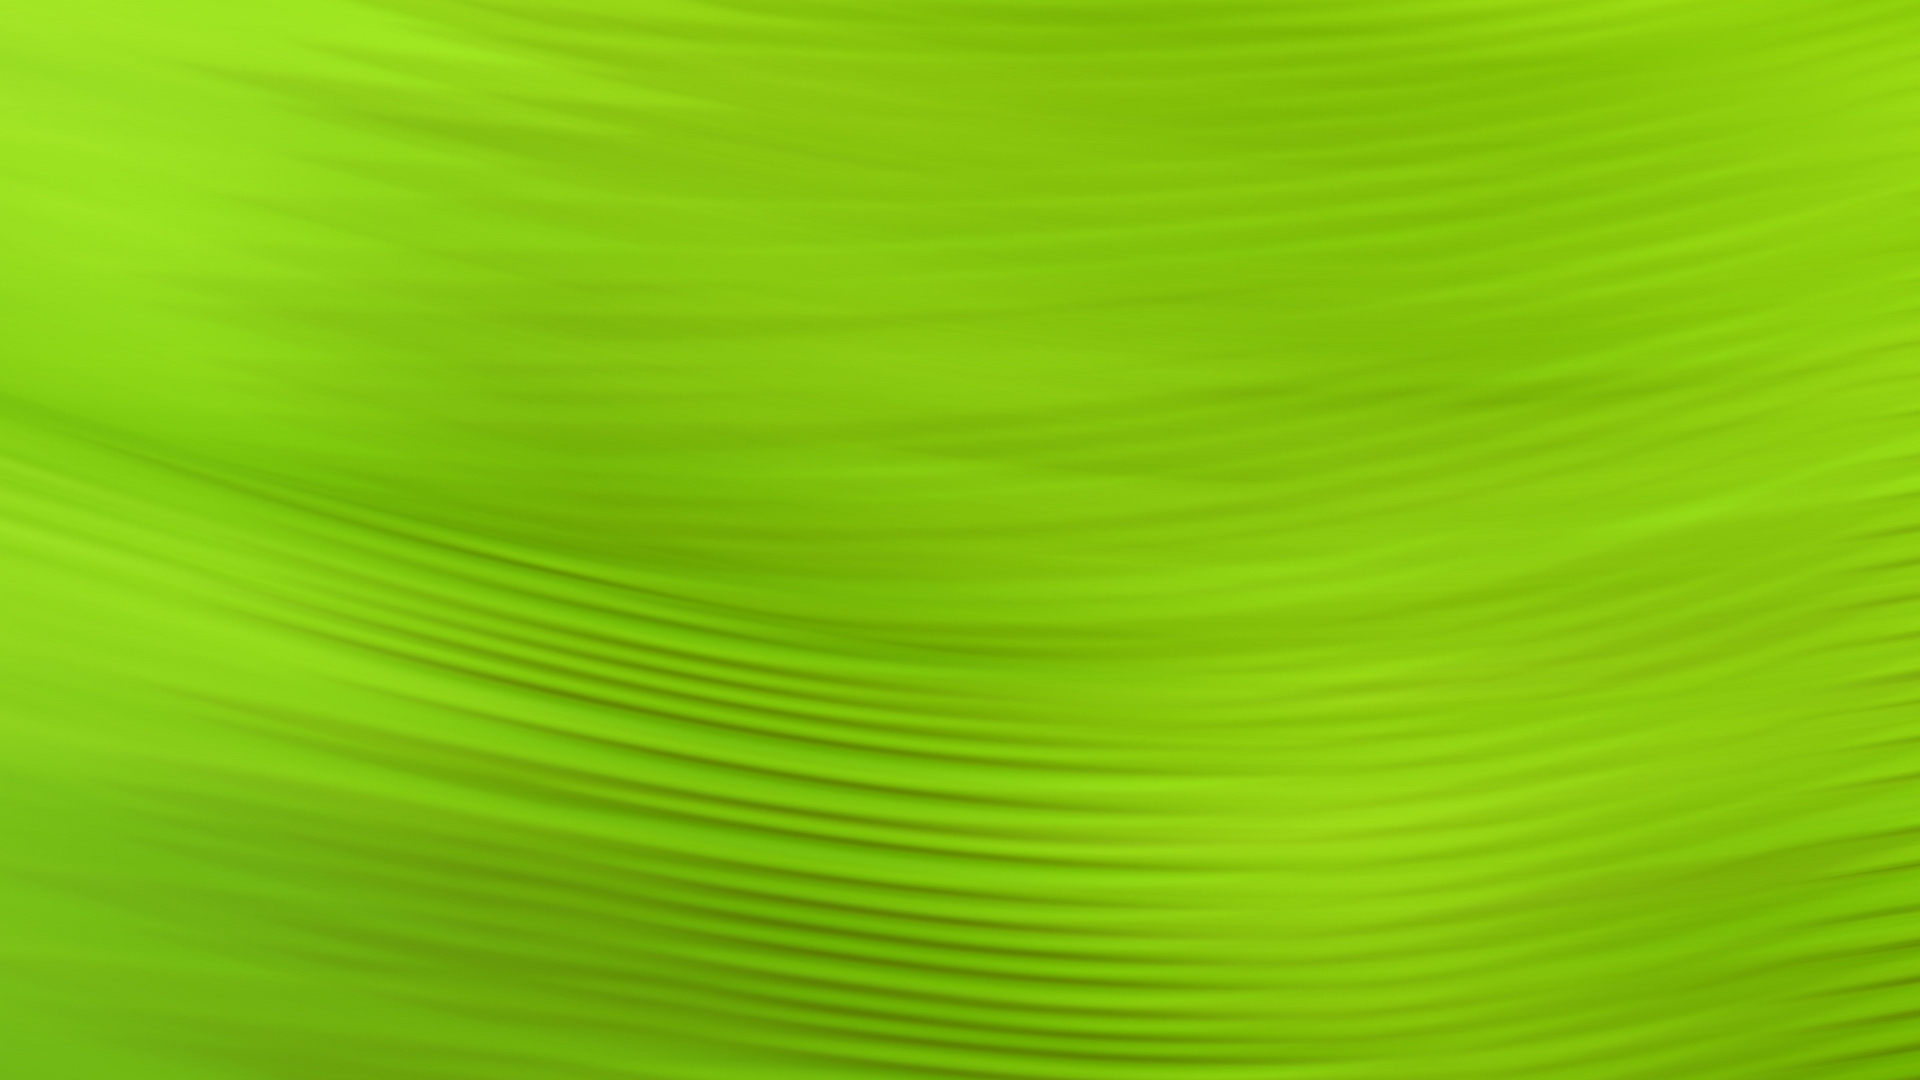 Green Free Abstract Wallpaper Desktop Background Wallpaper